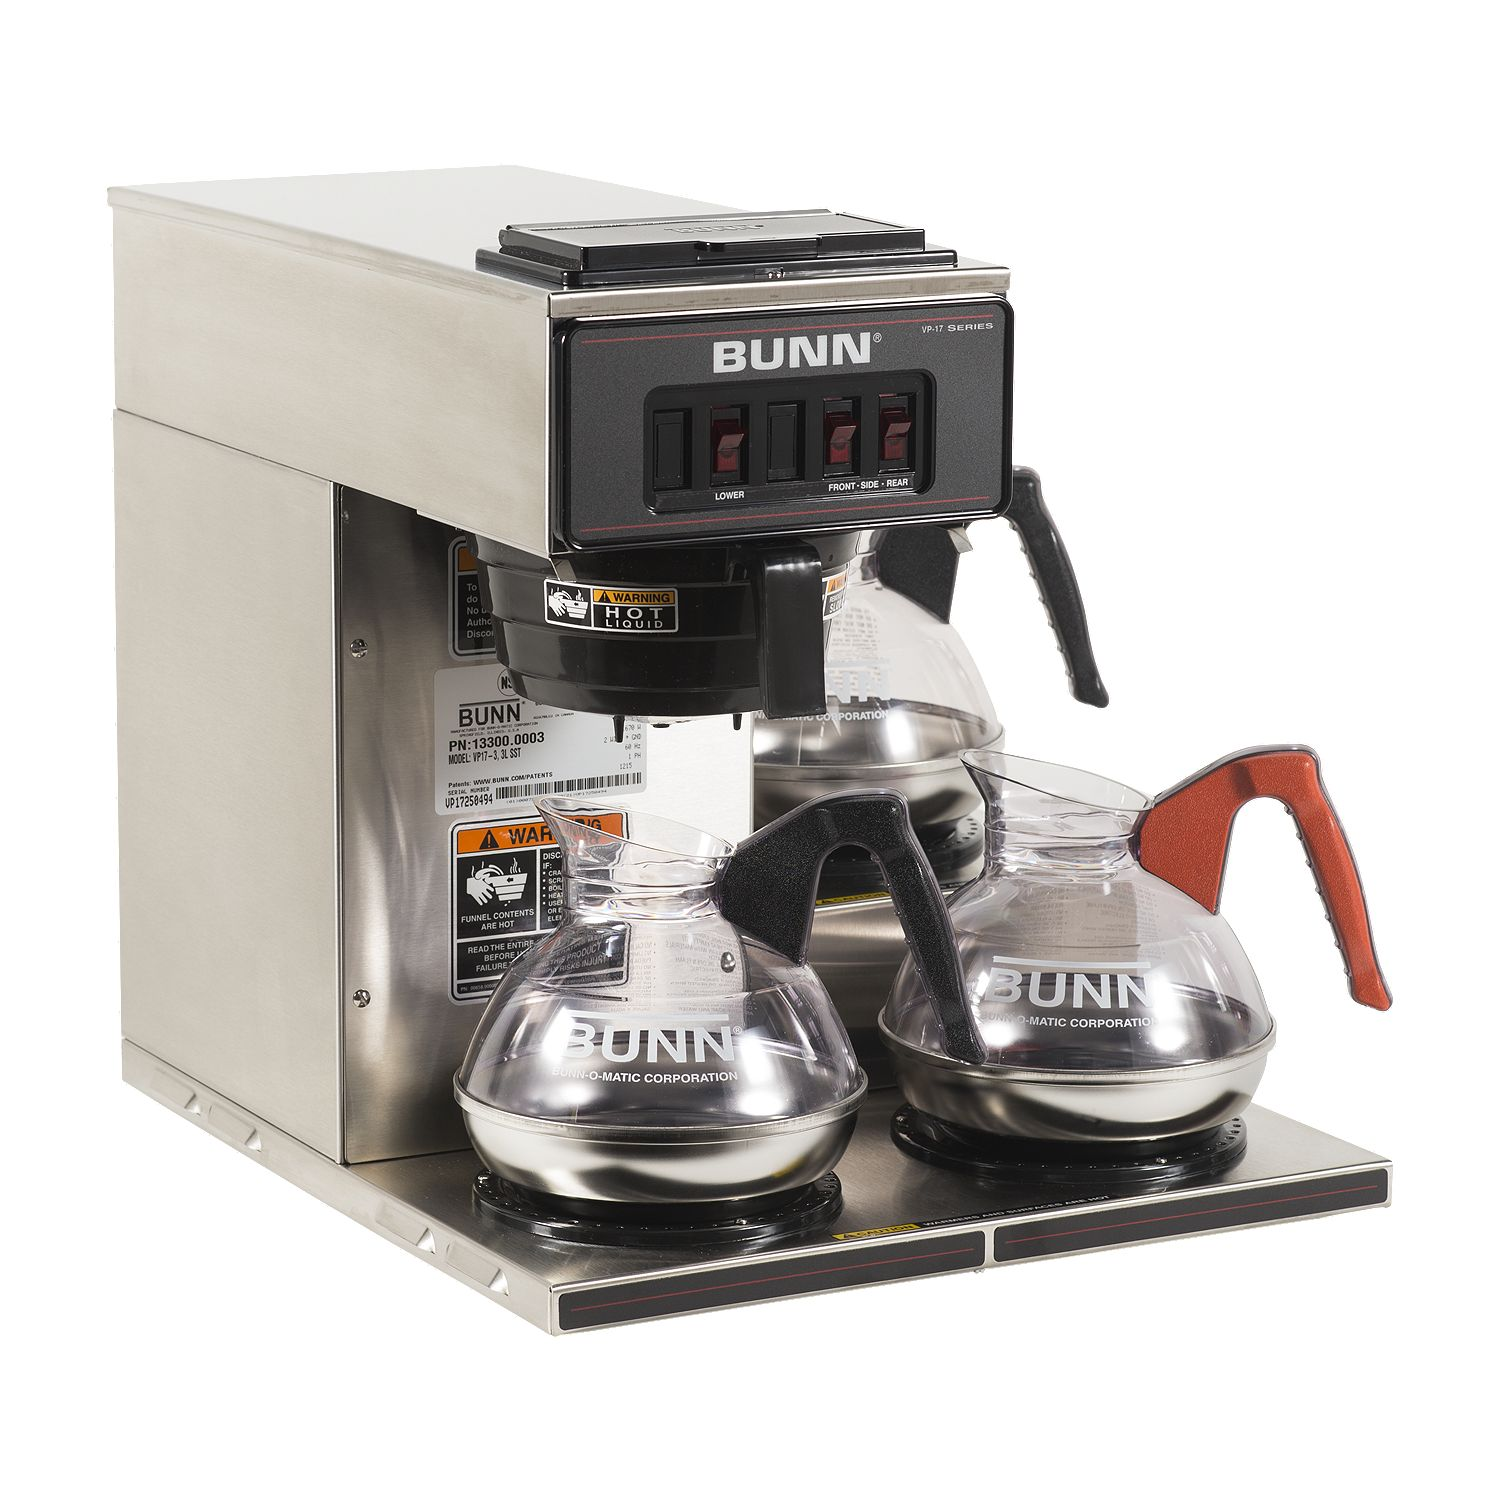 Bunn 13300.0003 VP17-3 3 LWR Warmer Pourover Decanter Brewer